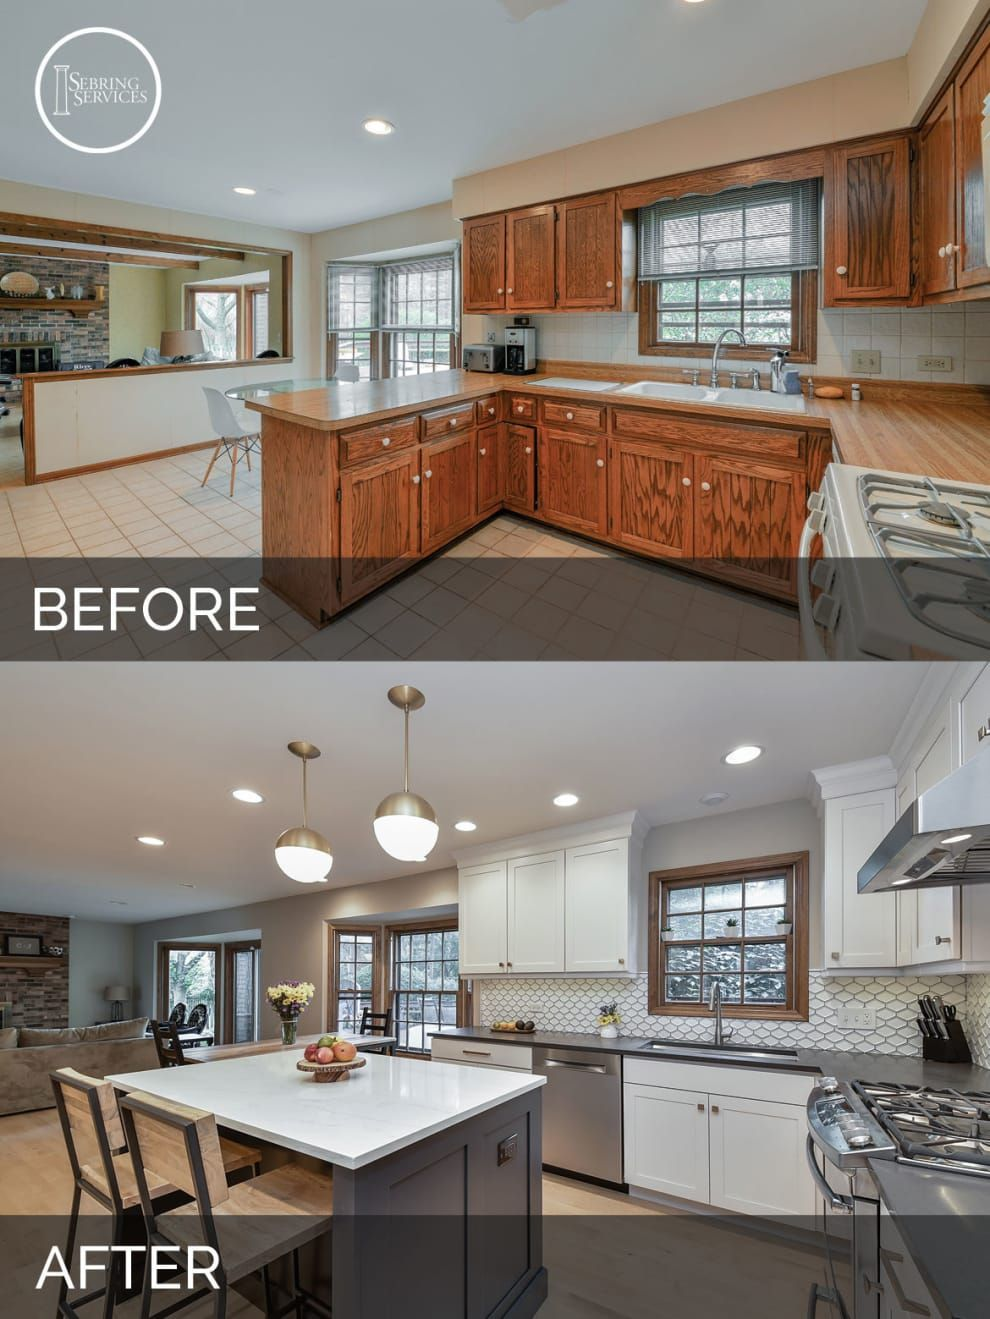 21 Inspirational Kitchen Transformations That Prove Contractors Are Magicians Kitchen Remodeling Projects Kitchen Design Kitchen Renovation